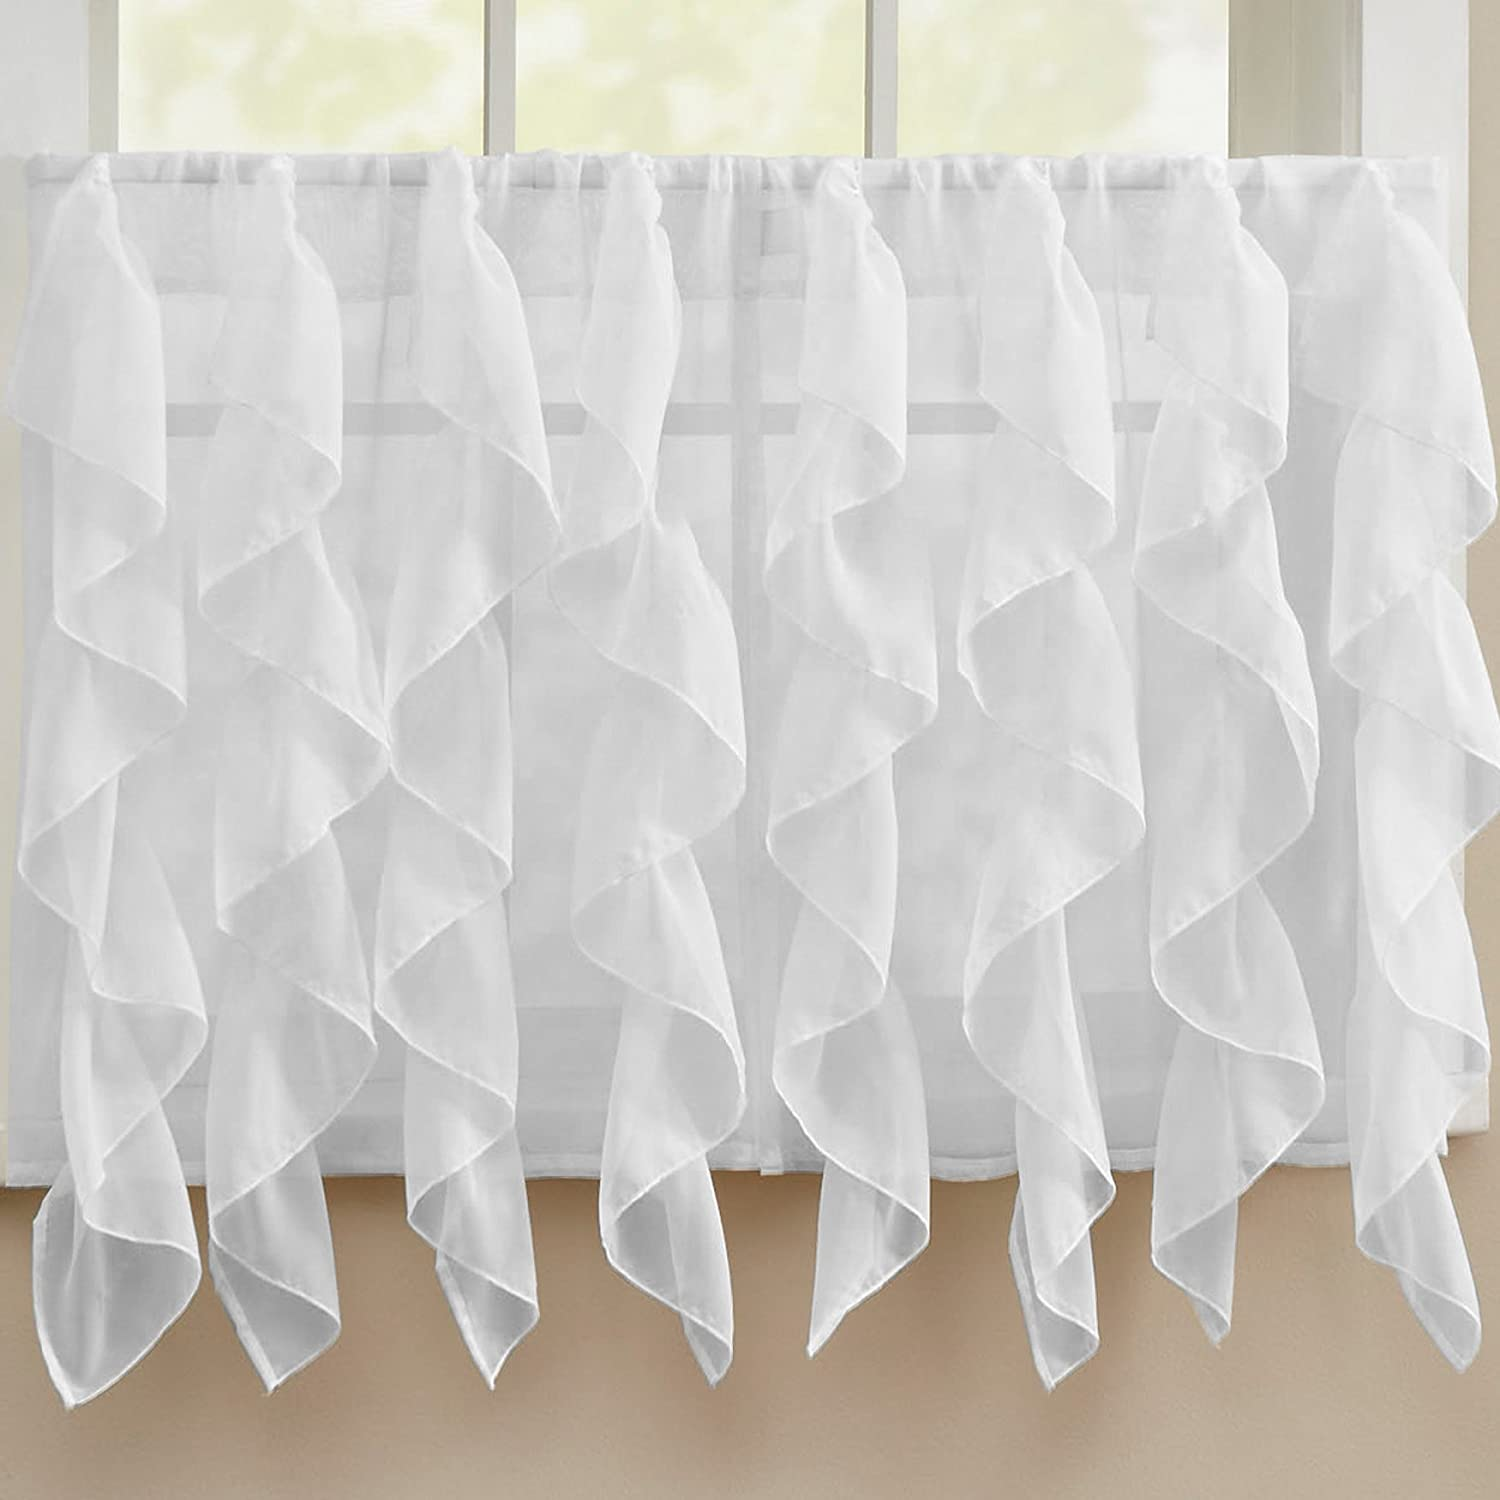 """Sweet Home Collection Kitchen Window Tier, Swag, or Valance Curtain Treatment in Stylish and Unique Patterns and Designs for All Home Décor, 36"""", Sheer White"""